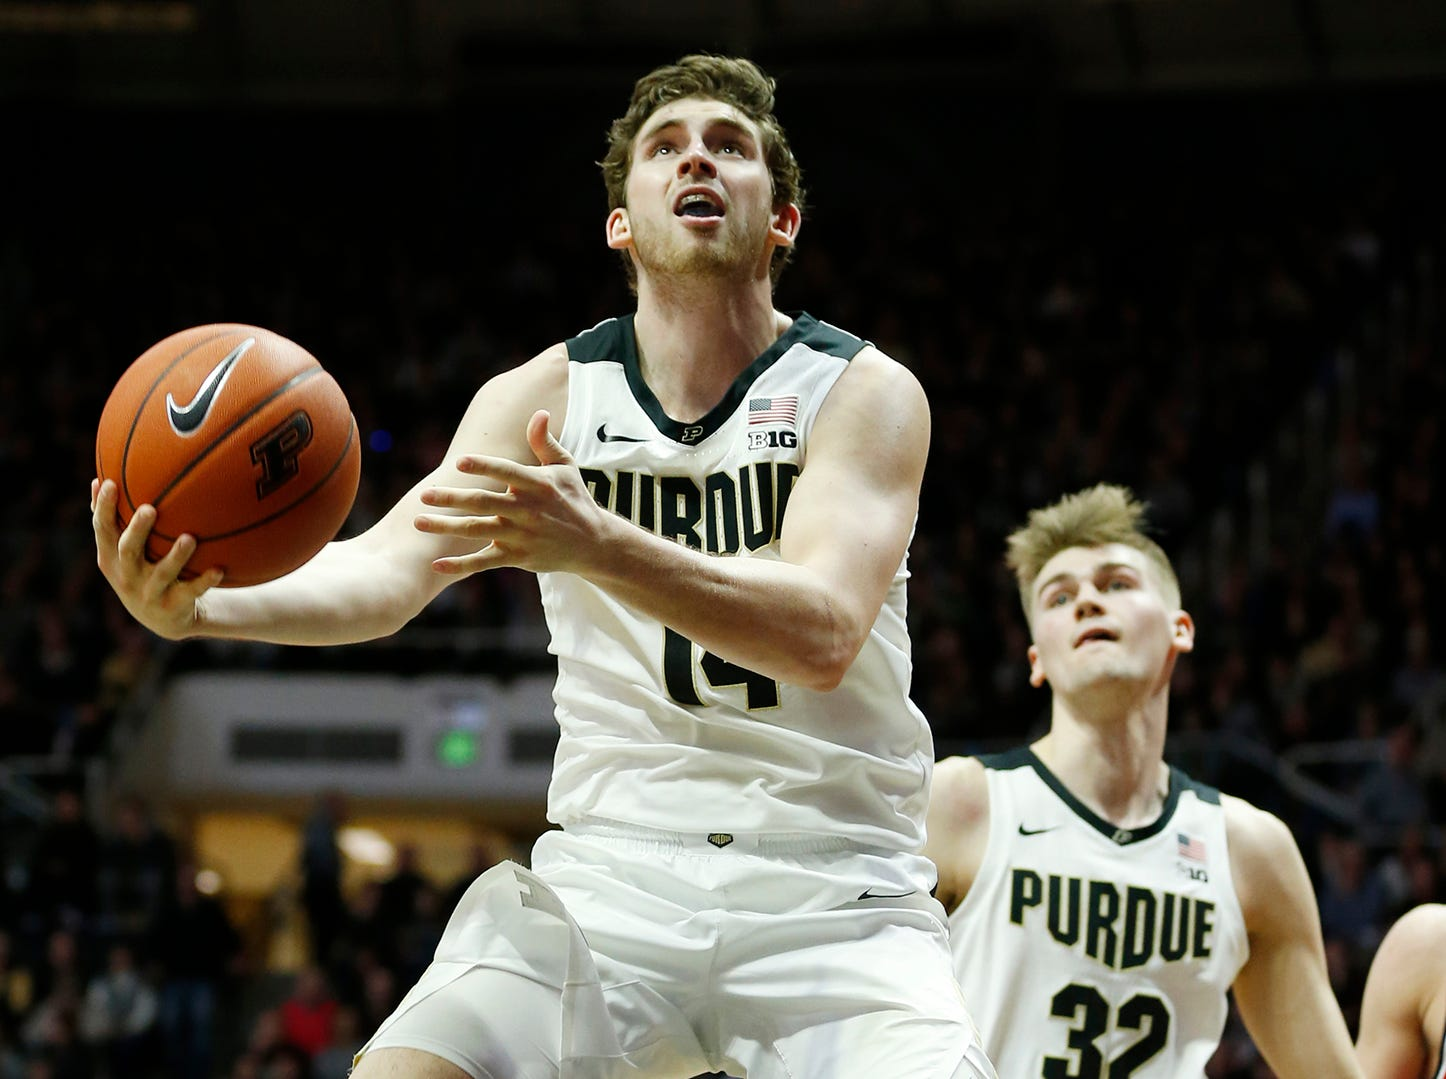 Ryan Cline of Purdue gets free for a layup against Belmont Saturday, December 29, 2018, at Mackey Arena. Purdue defeated Belmont 73-62.